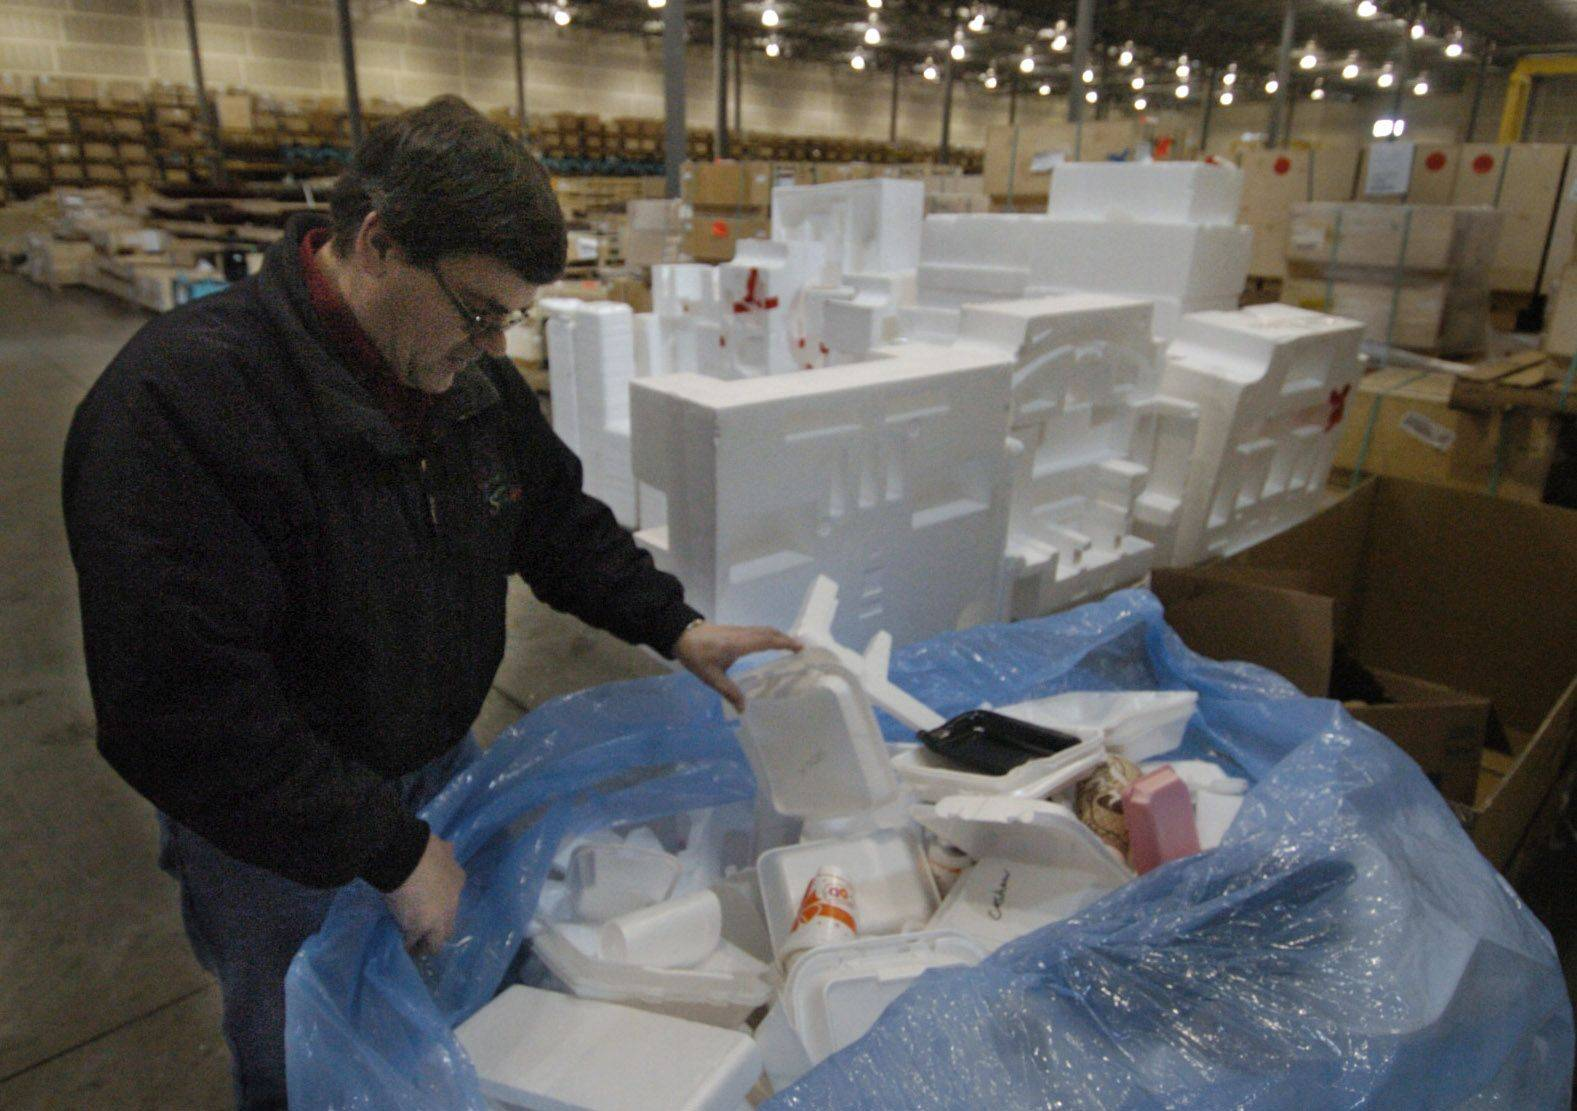 Ken Santowski, owner of Chicago Logistic Service in Elgin, goes through a bag of packing foam and foam lunch trays, which he will take to a recycling facility in North Aurora.